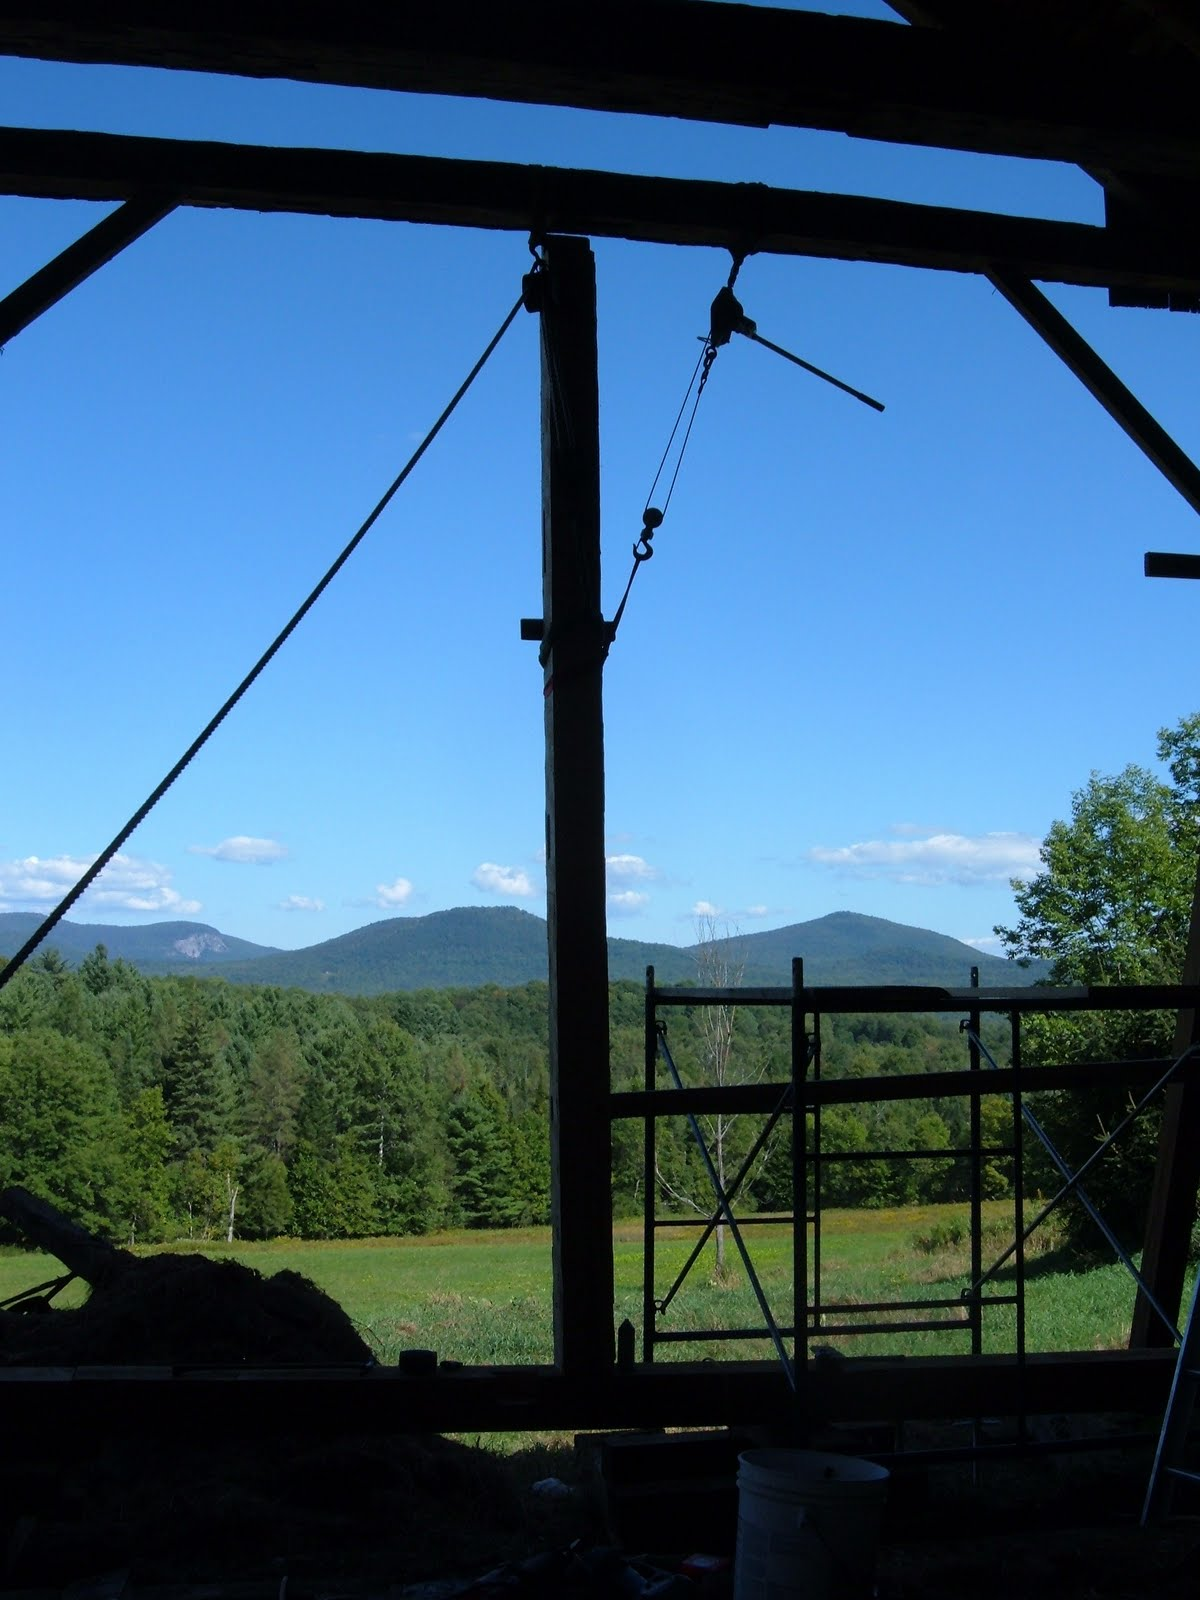 This is a view of the same gable wall as a new post is being lifted into place.